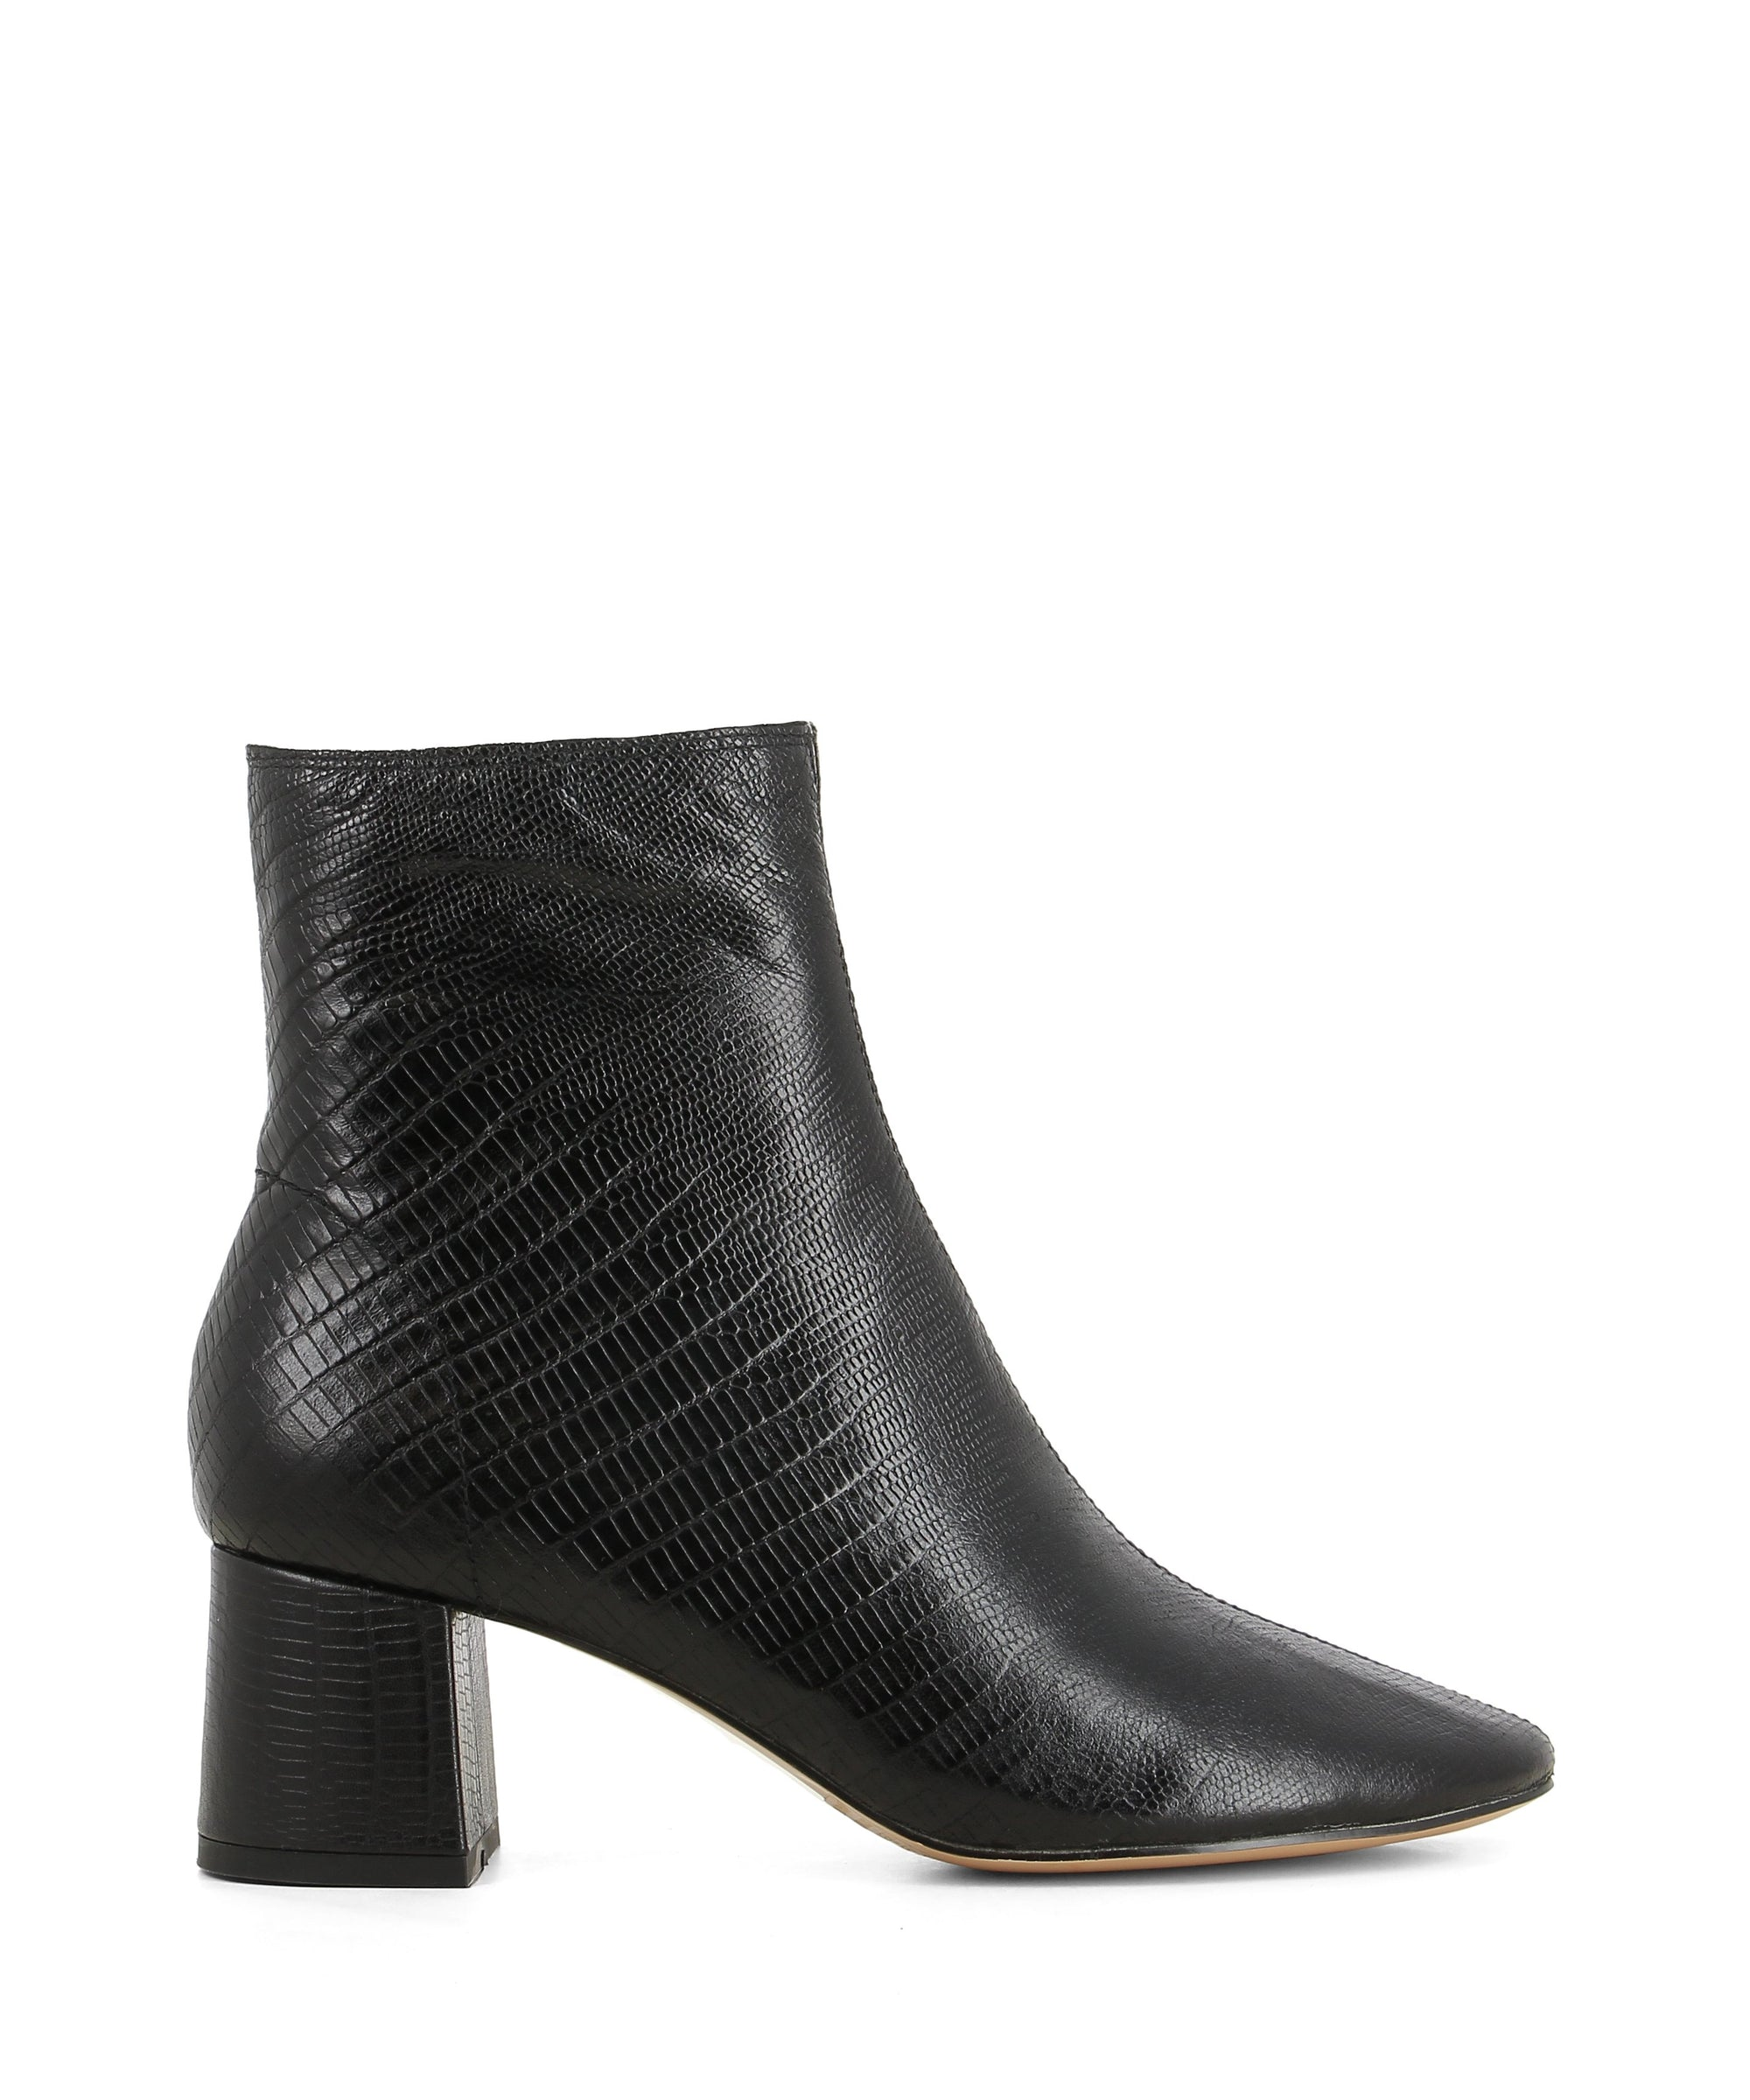 Black leather ankle boots that has inner zipper fastening and features lizard texture to the upper, a low 5 cm block heel and a round toe by 2 Baia Vista.